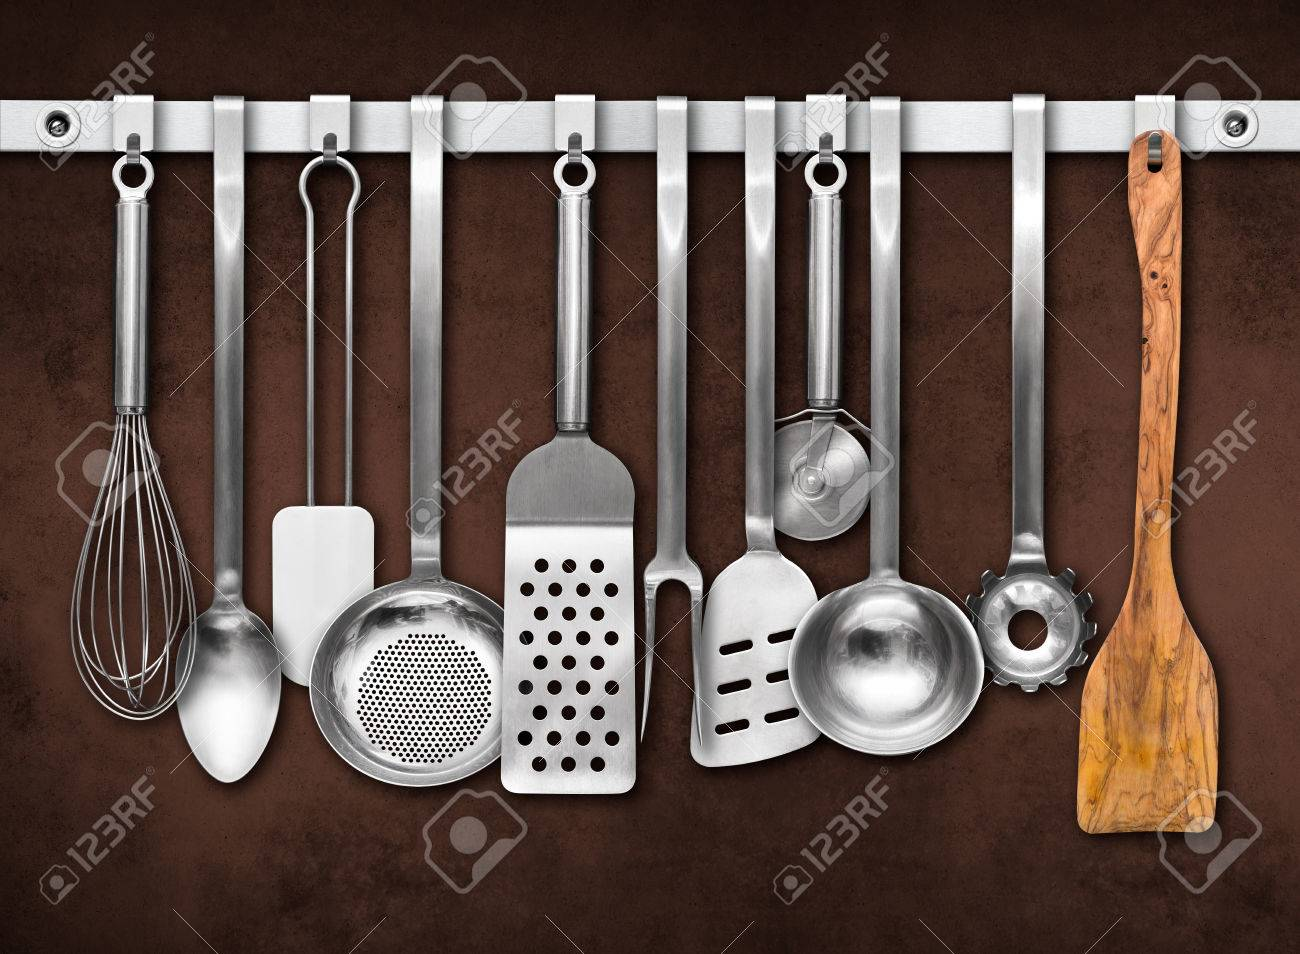 Metal Rail With Kitchen Utensils Hanging In Front Of A Colorful Wall Stock  Photo   44274058